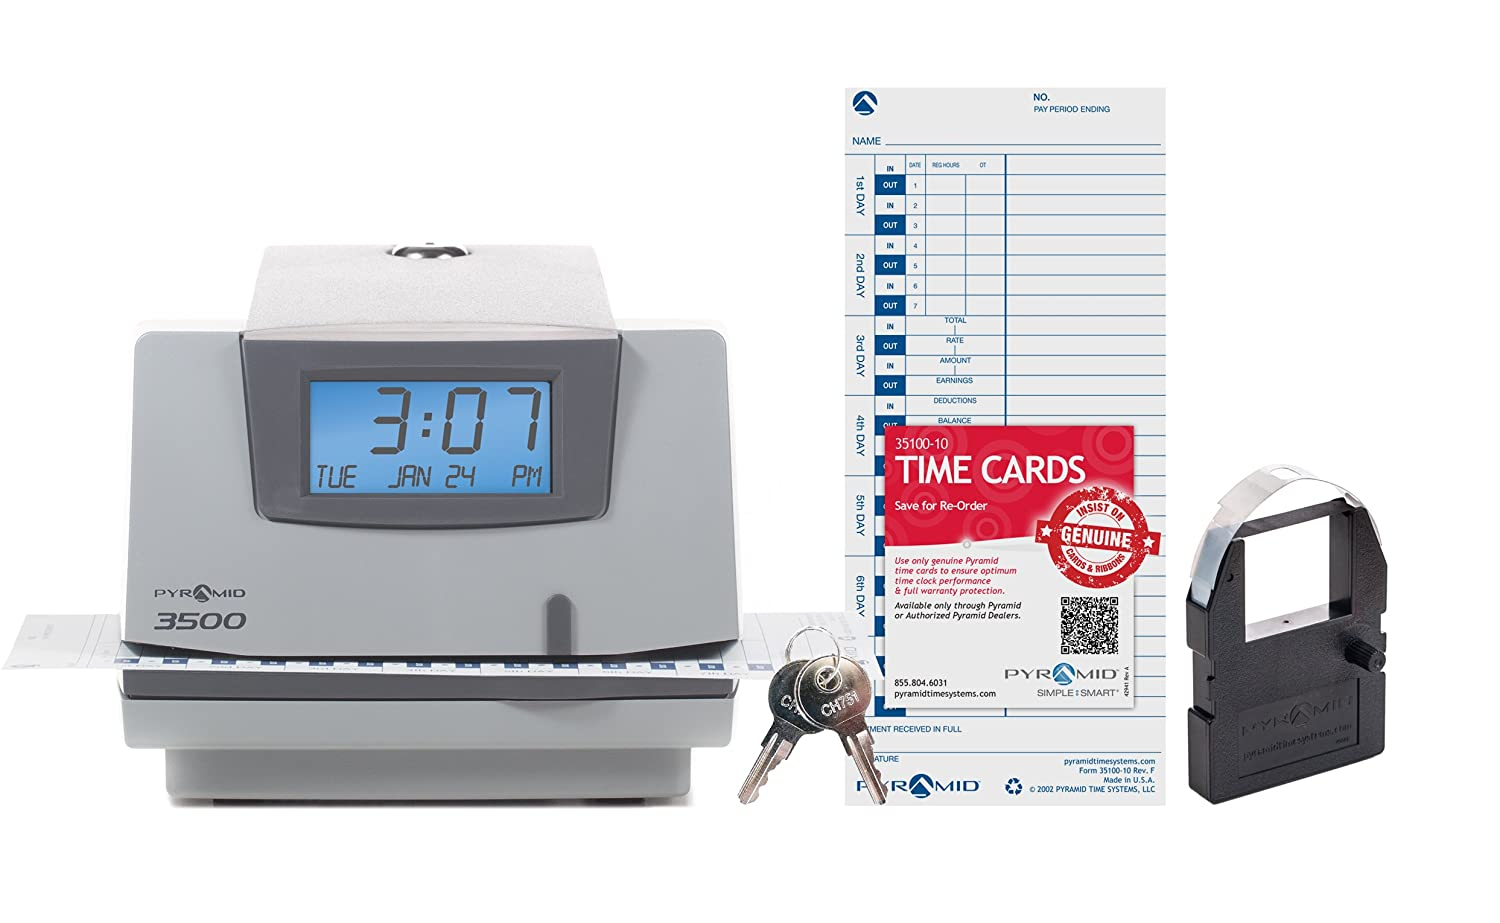 Pyramid 3500 Multi-Purpose Time Clock and Document Stamp Pyramid Time Systems